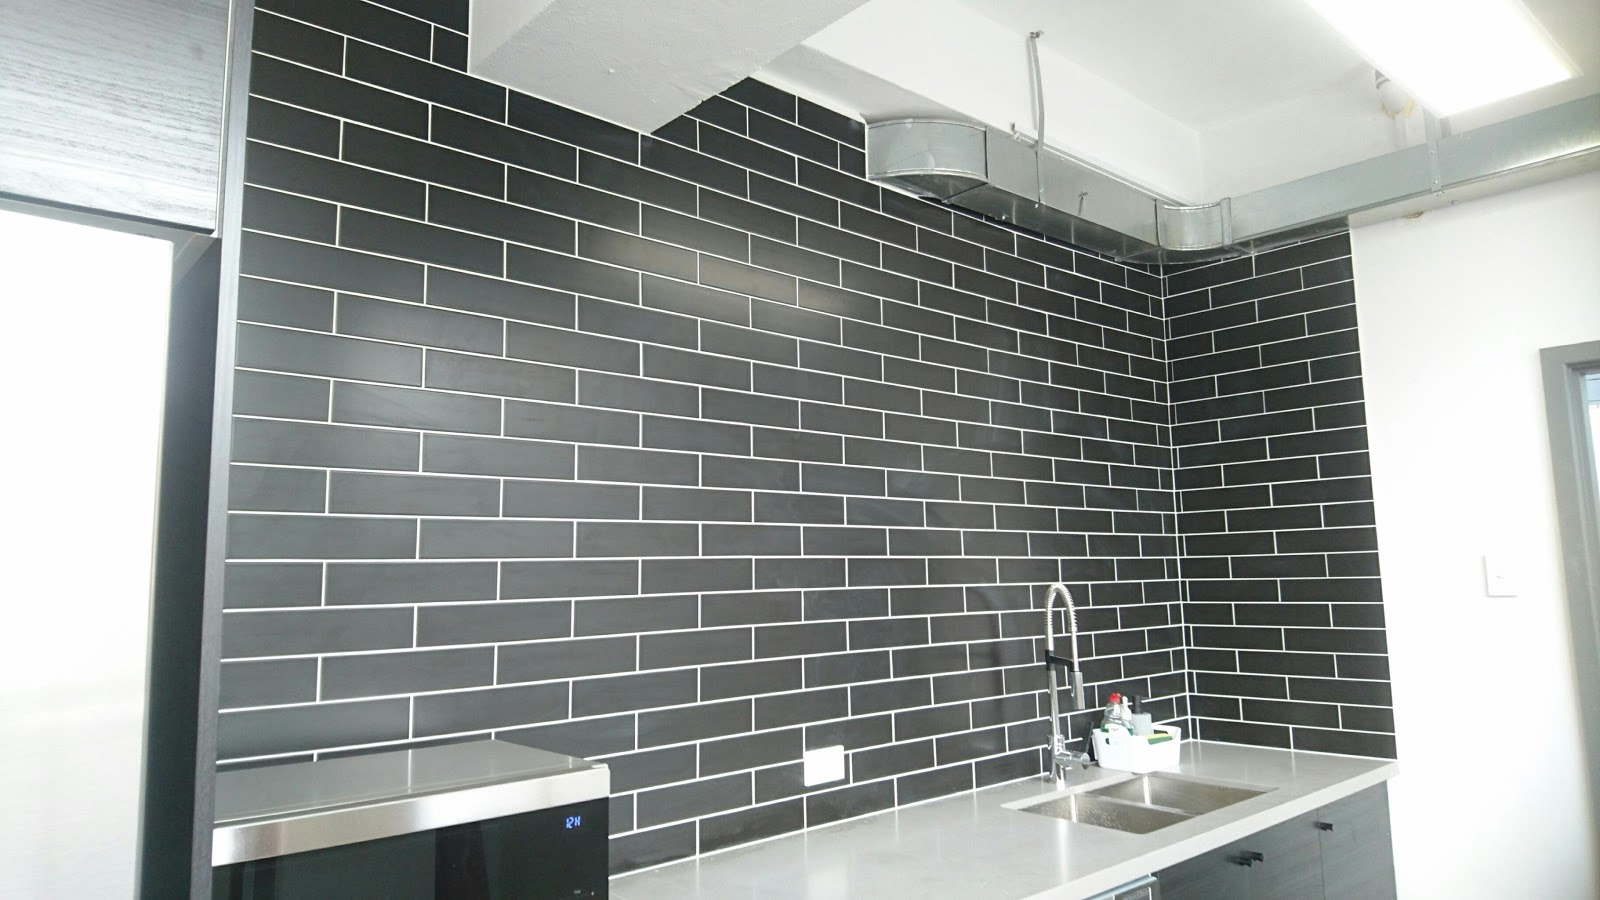 Black glossy subway tiles with white grout definitely a feature of this business now